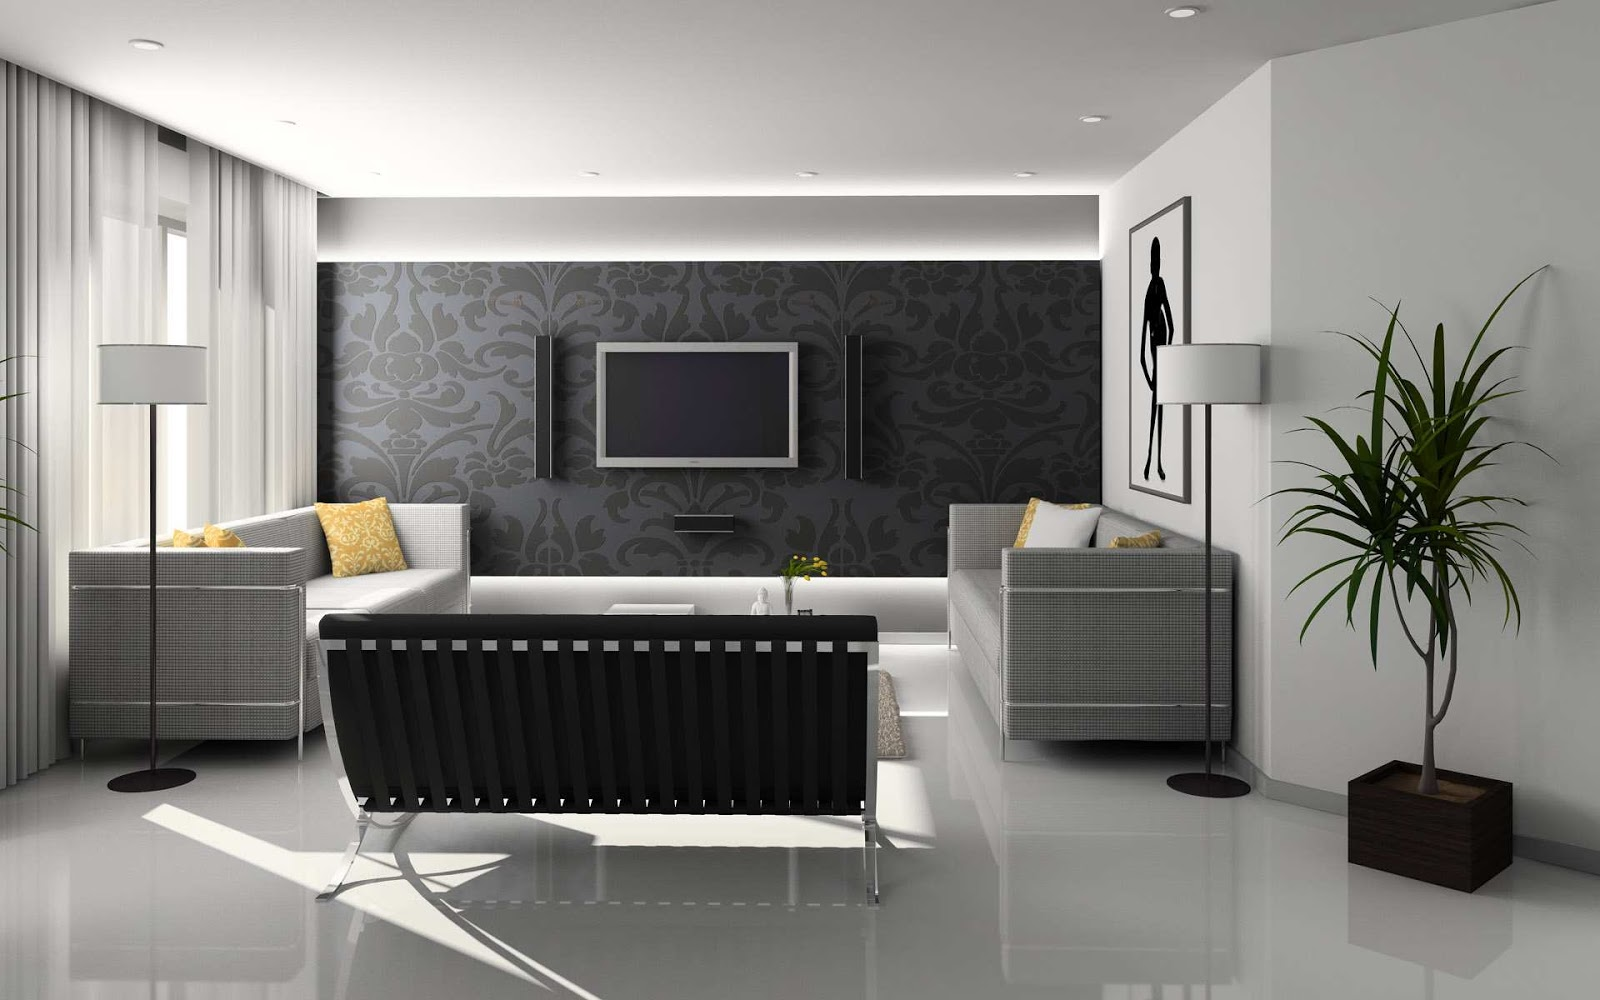 House interior design best interior for Interior designs of a house